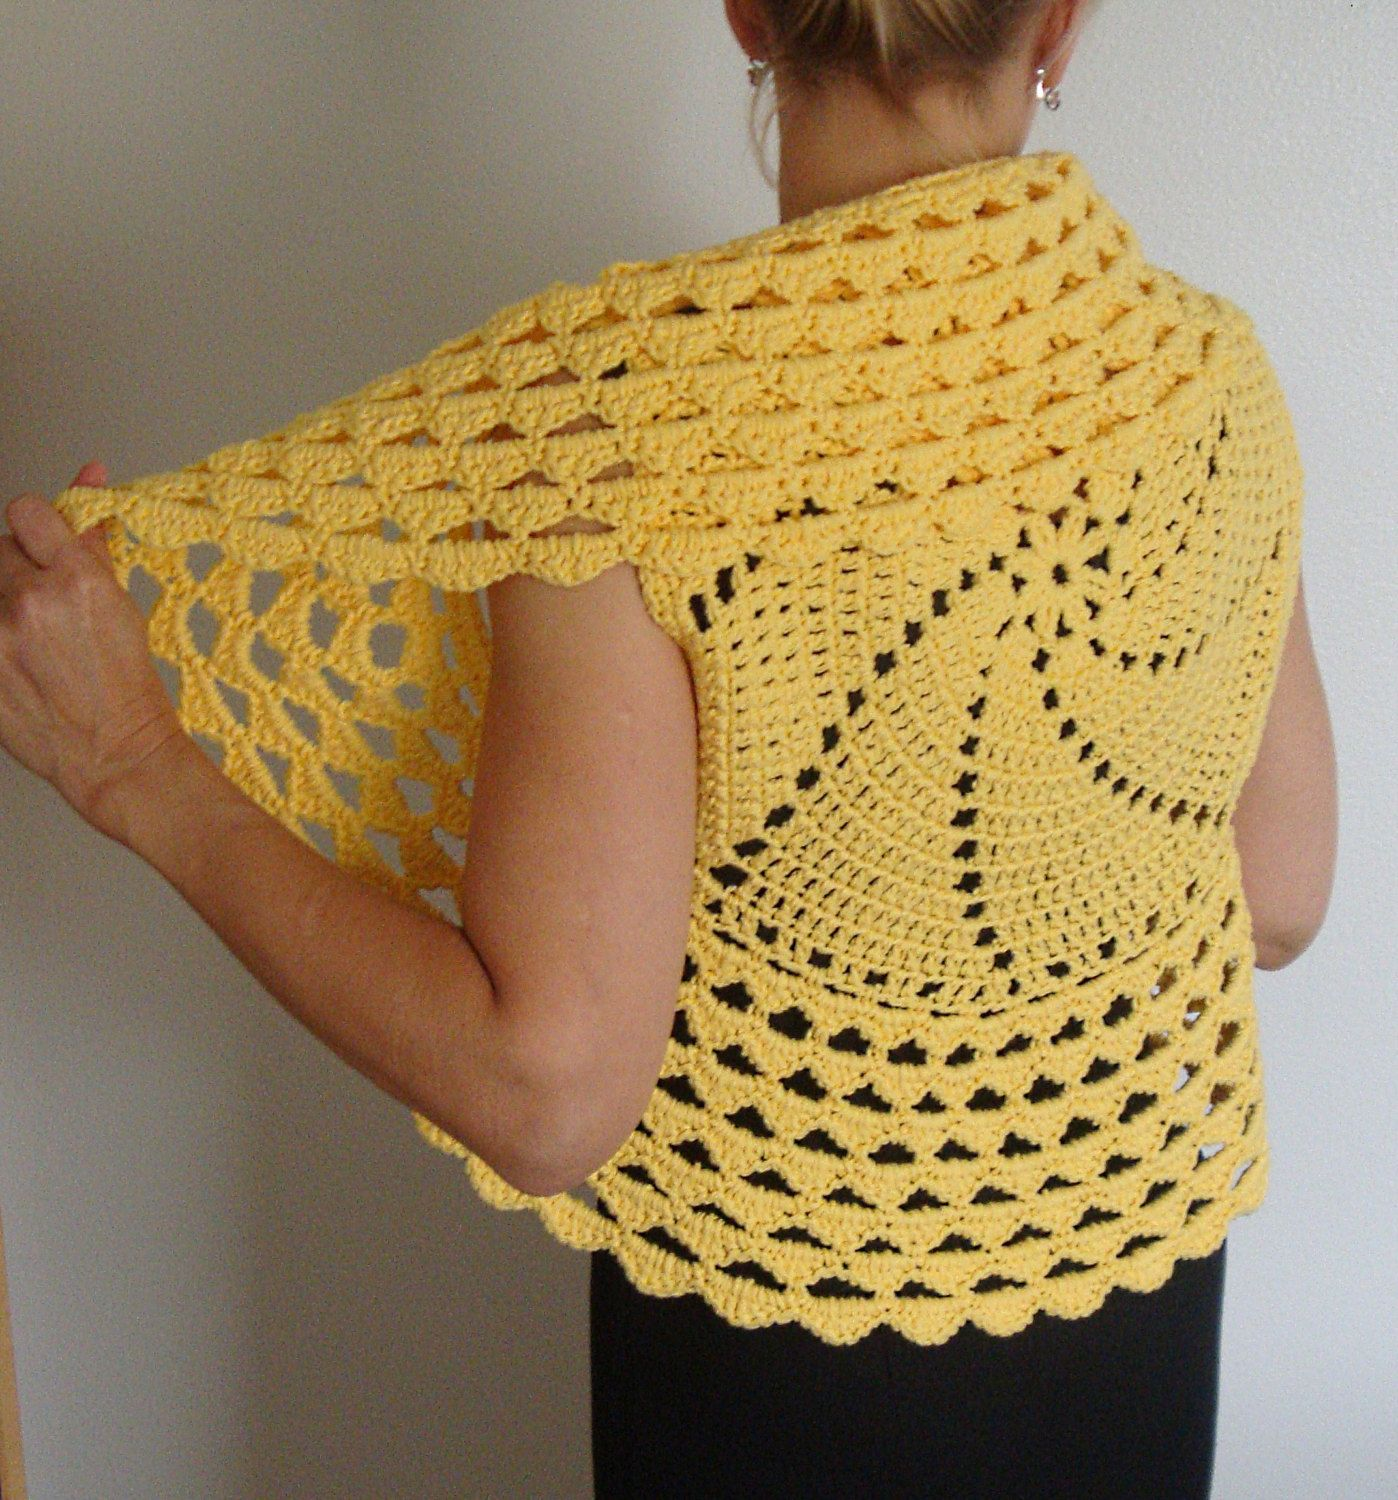 Pin by Maria MIHALY on bbb | Pinterest | Easy crochet patterns, Easy ...